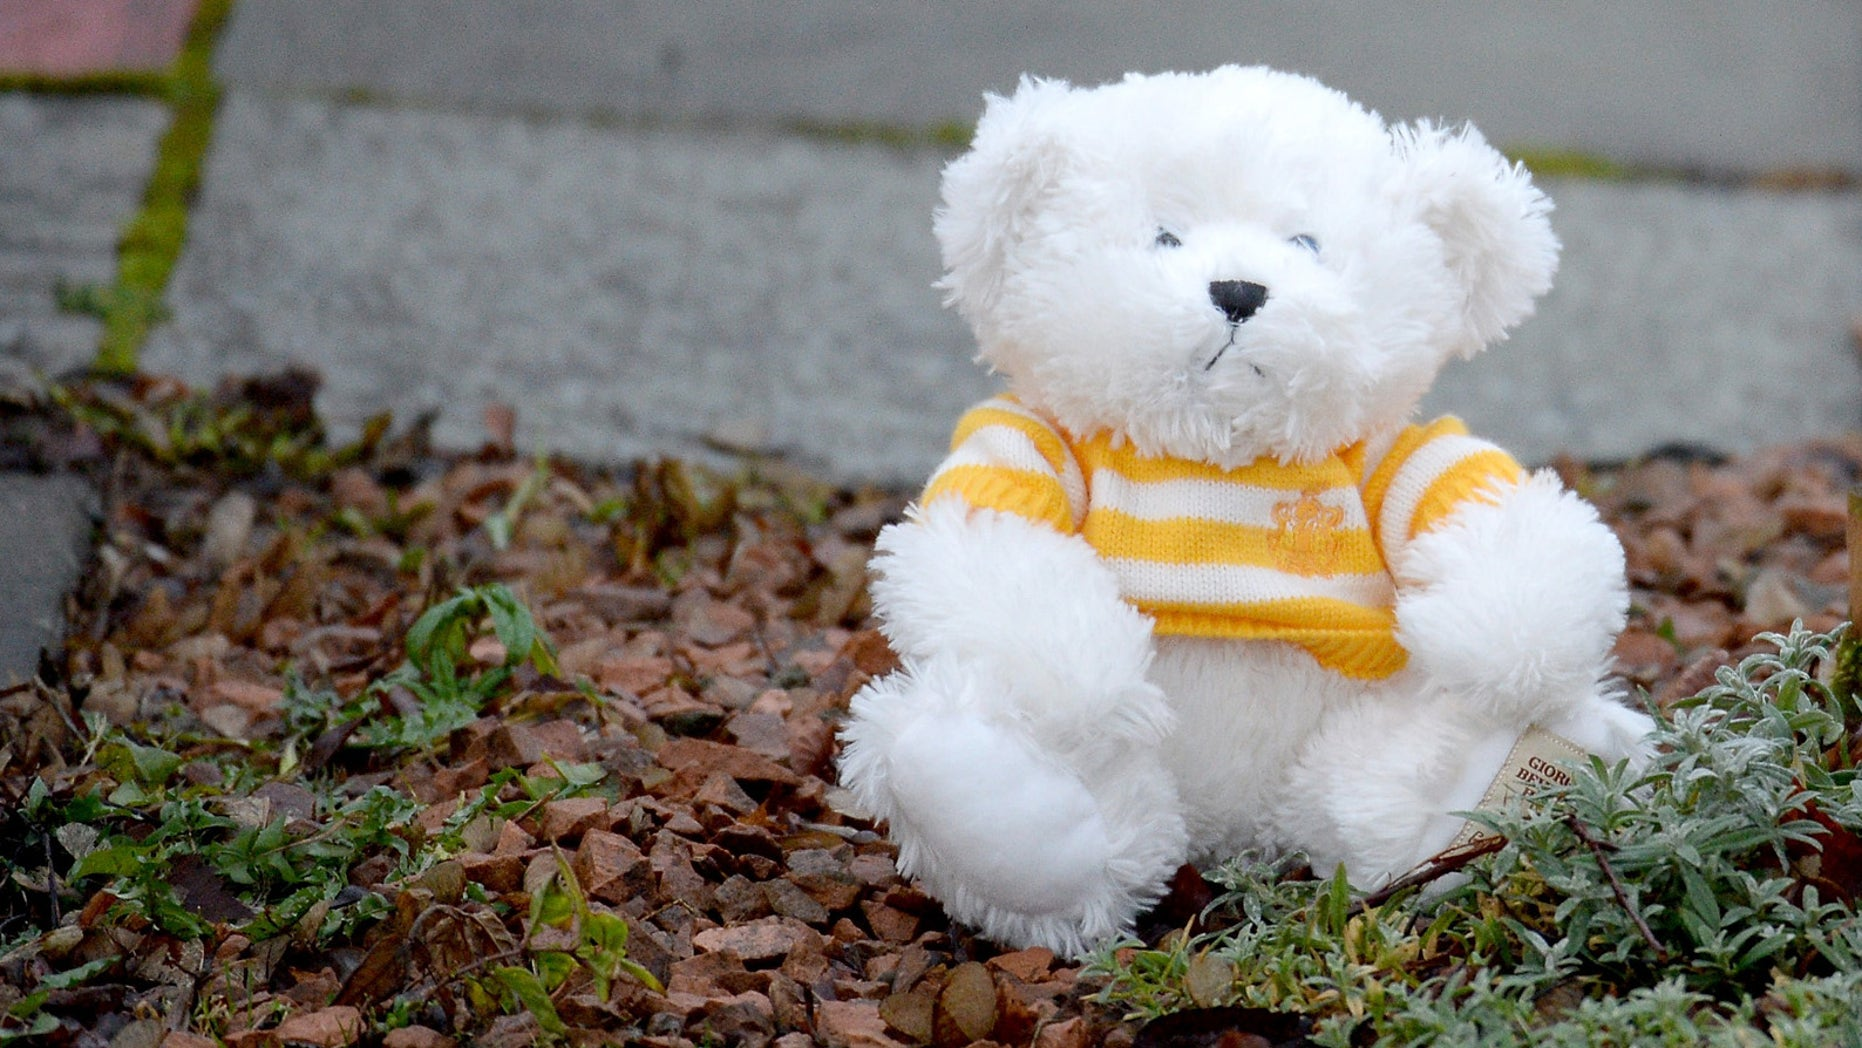 KIRKCALDY, SCOTLAND - JANUARY 18:  A teddy bear is left outside a bungalow in Dunvegan Acenue in Kirkcaldy where a young boy's body believed to be Mikaeel Kular, 3, was found last night on January 18, 2014 in Kircaldy, Scotland. Mikaeel was reported missing from his home in Edinburgh on January 15. His mother Rosdeep has been detained by police.  (Photo by Jeff J Mitchell/Getty Images)